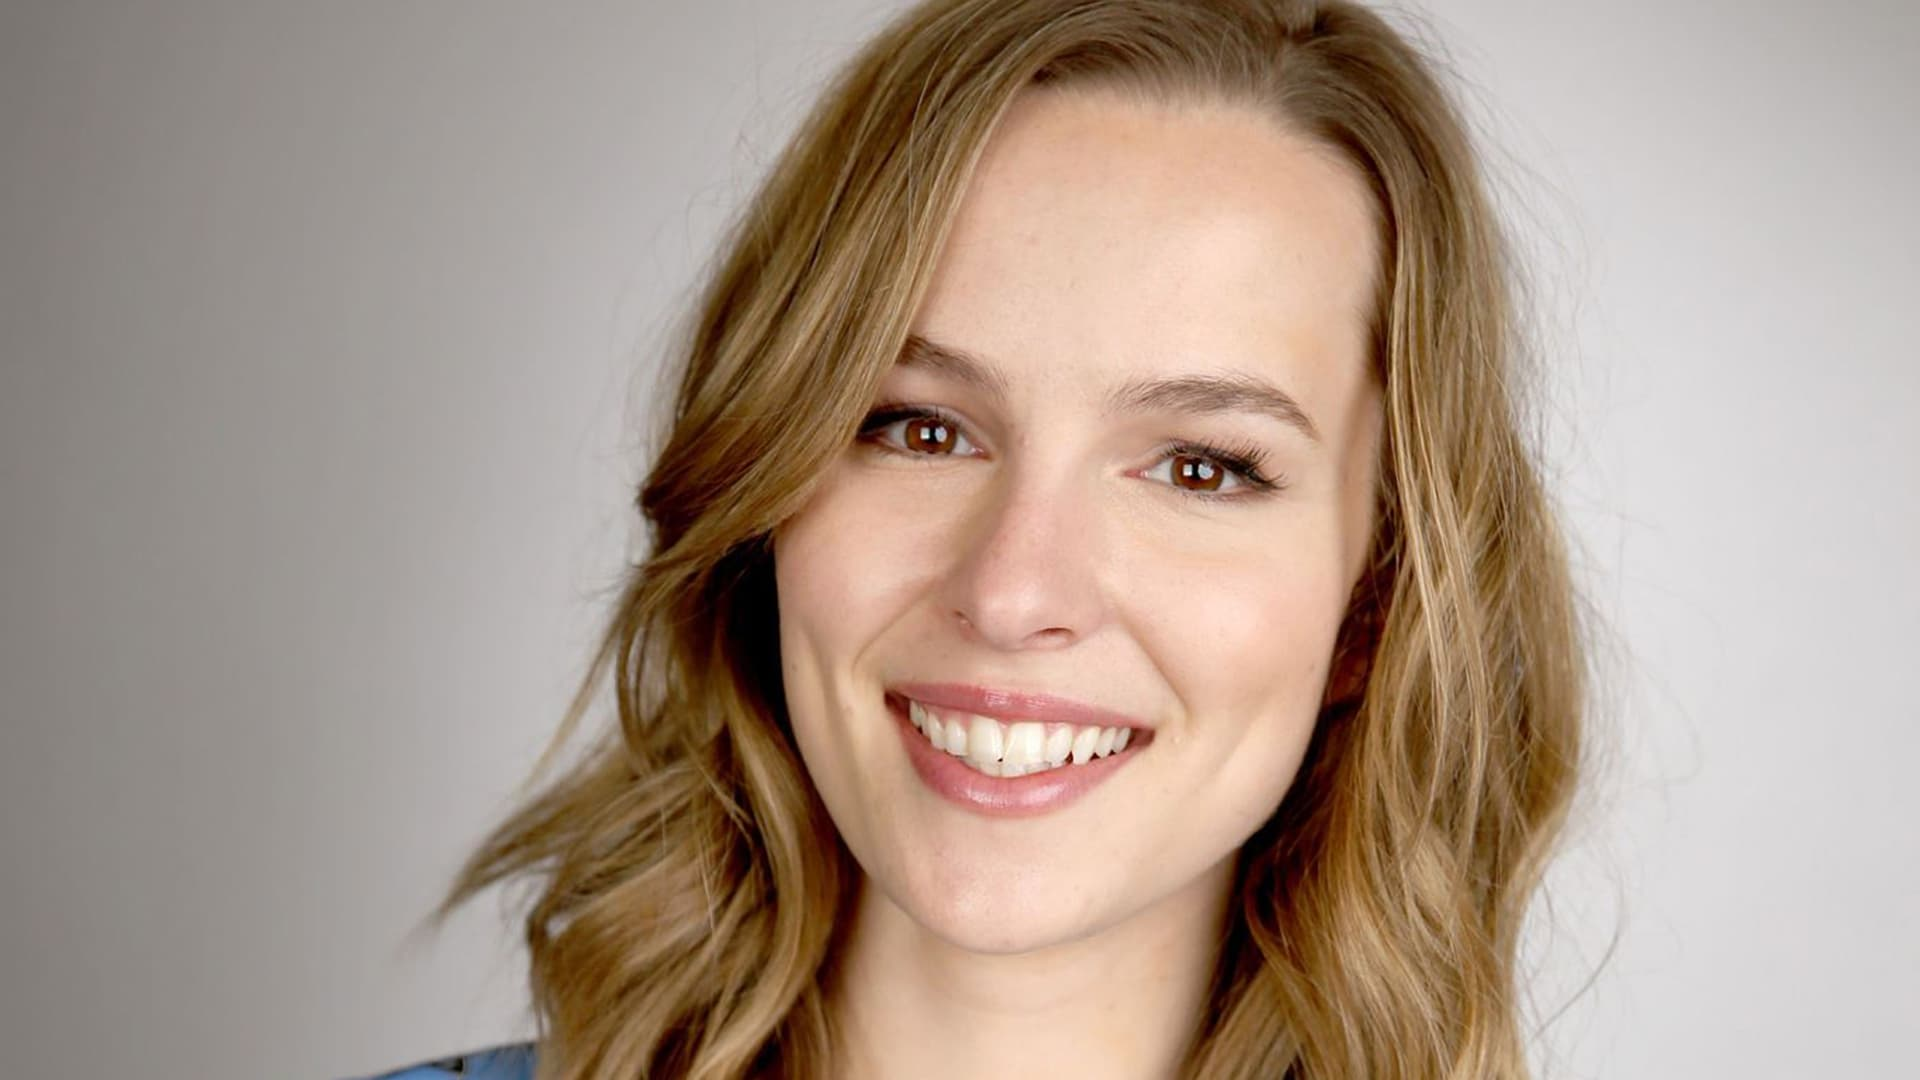 High Resolution Wallpapers Of Animals Bridgit Mendler Wallpapers Hd High Quality Resolution Download